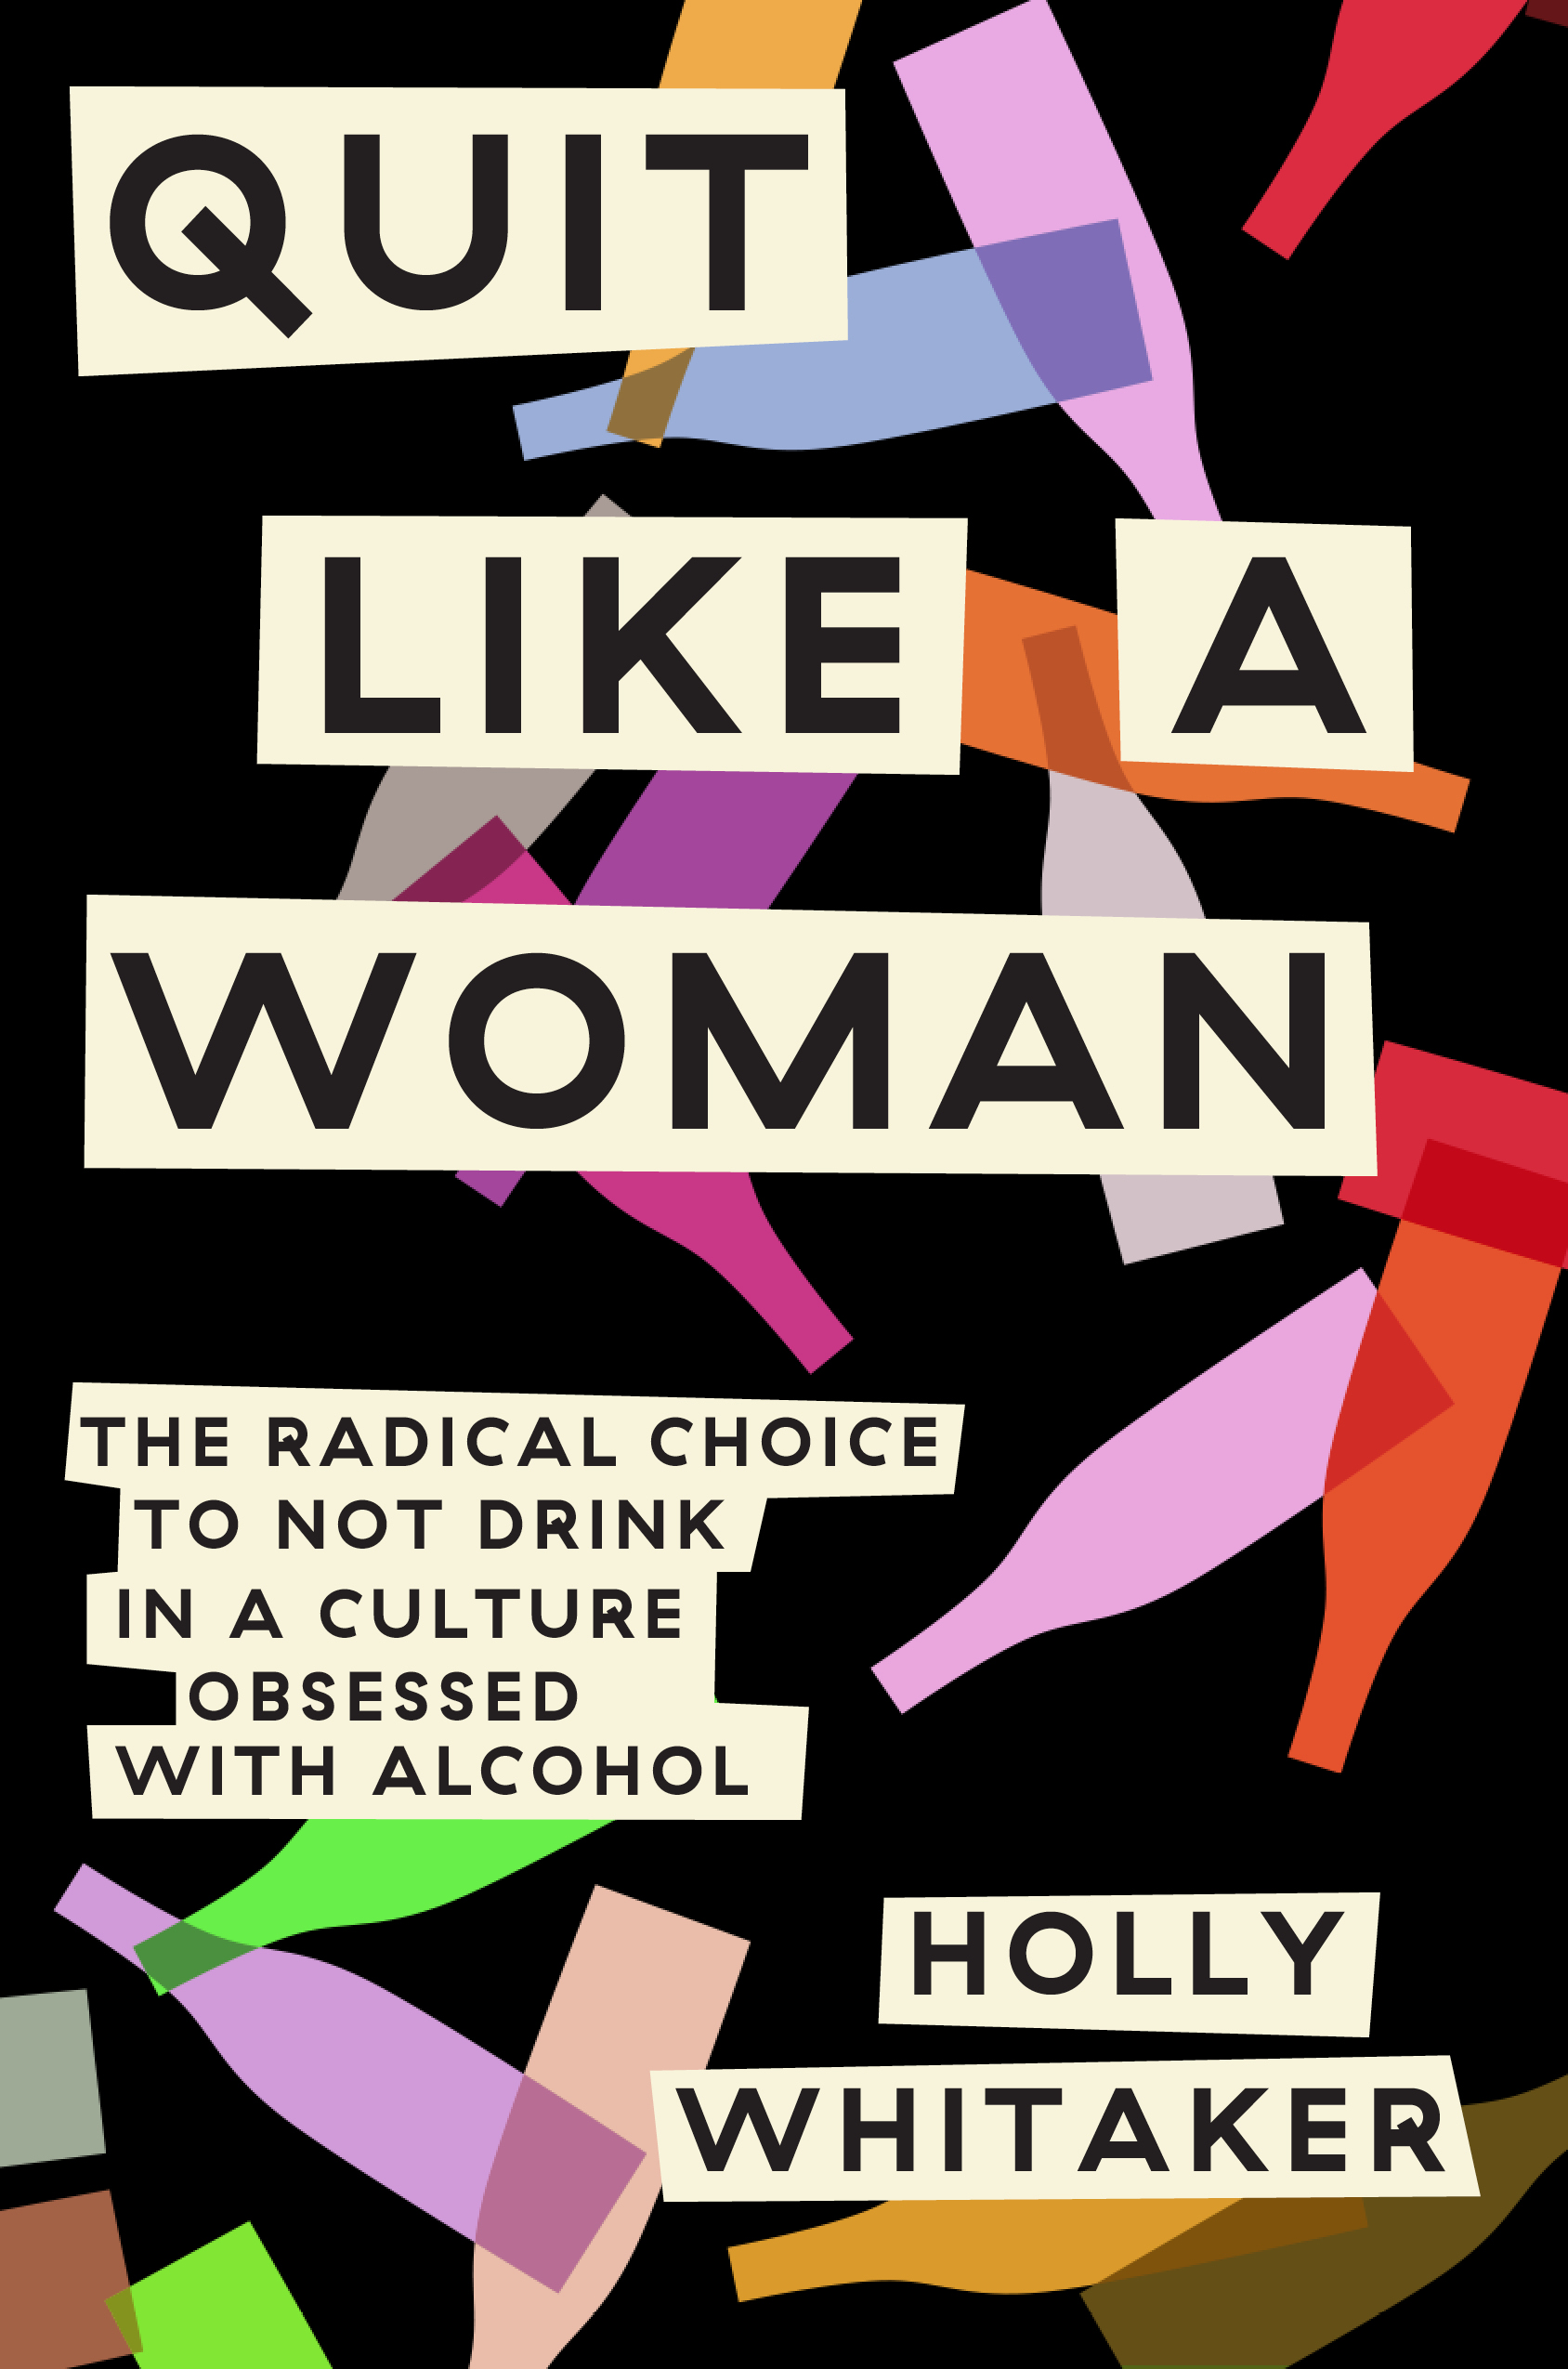 'Quit Like a Woman' by Holly Whitaker